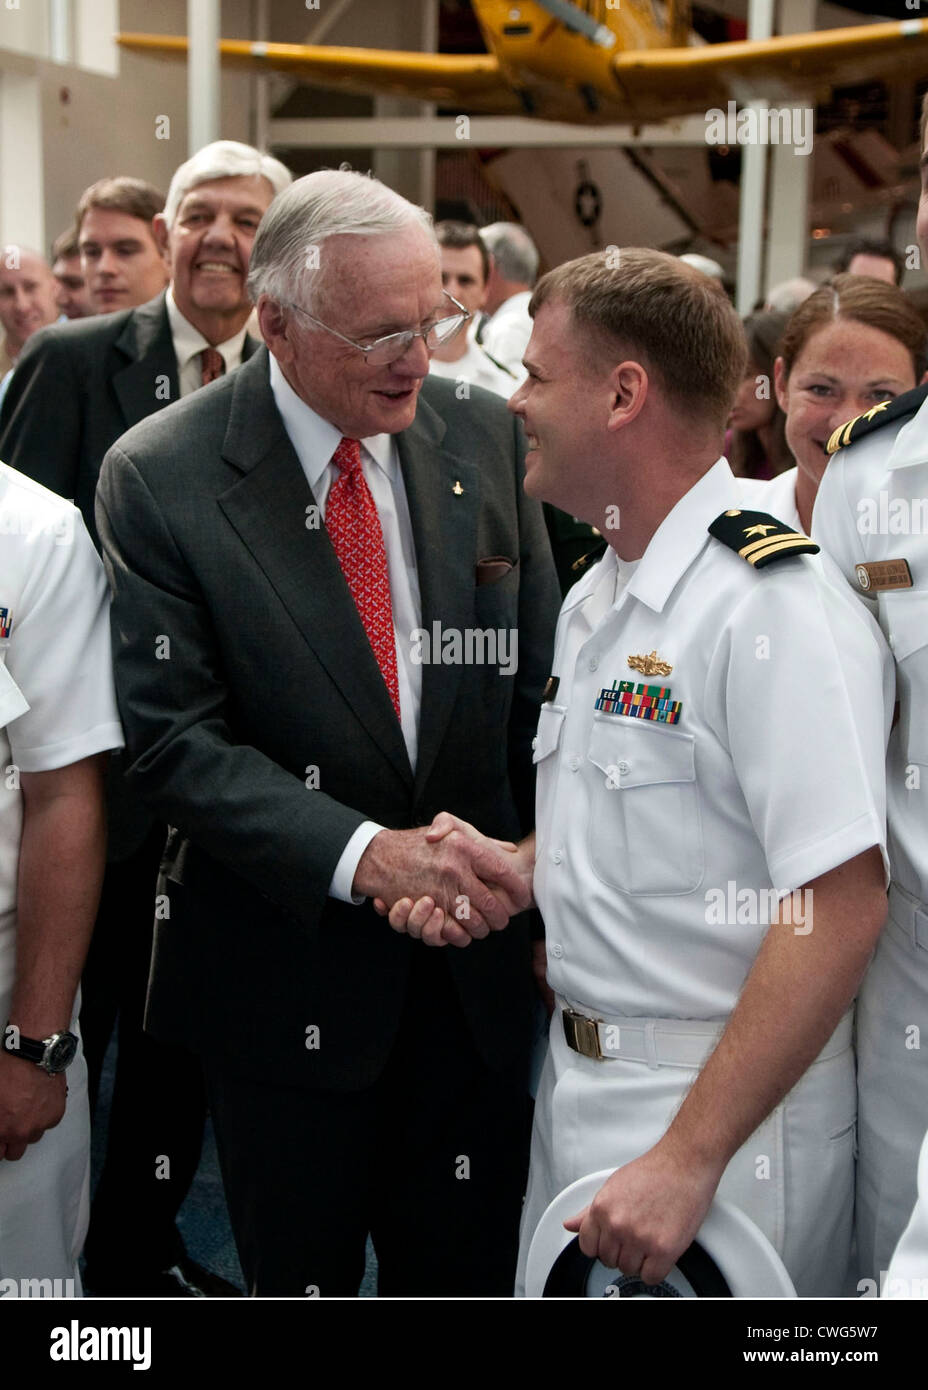 Former astronaut Neil Armstrong is congratulated by Lt. Gavin Clough, from San Diego, Calif. after Armstrong's - Stock Image